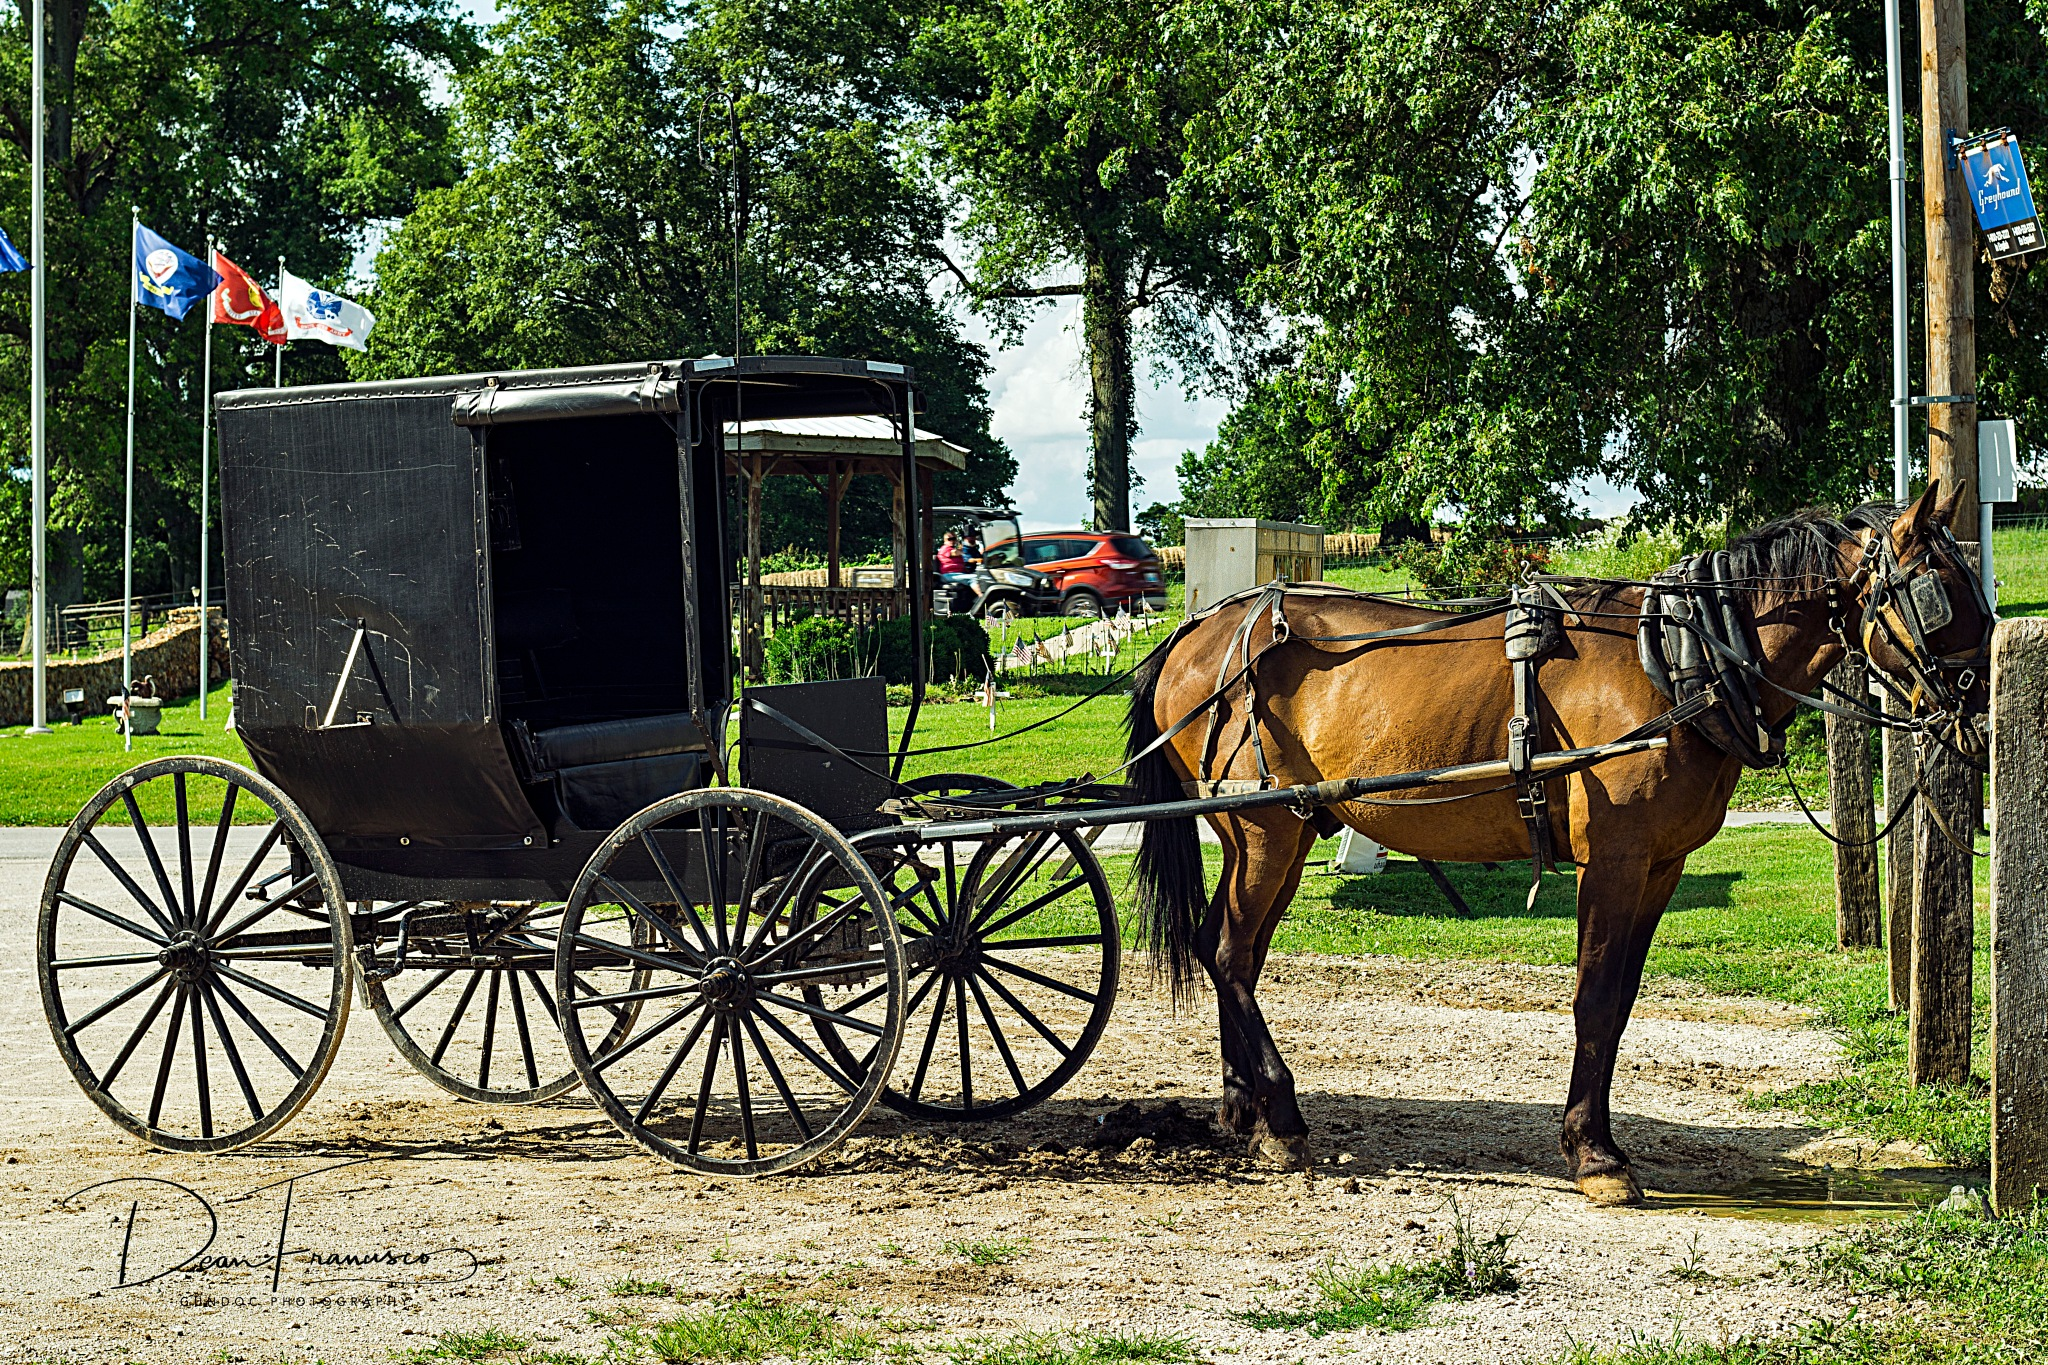 Amish Buggy SUV version by Dean Francisco